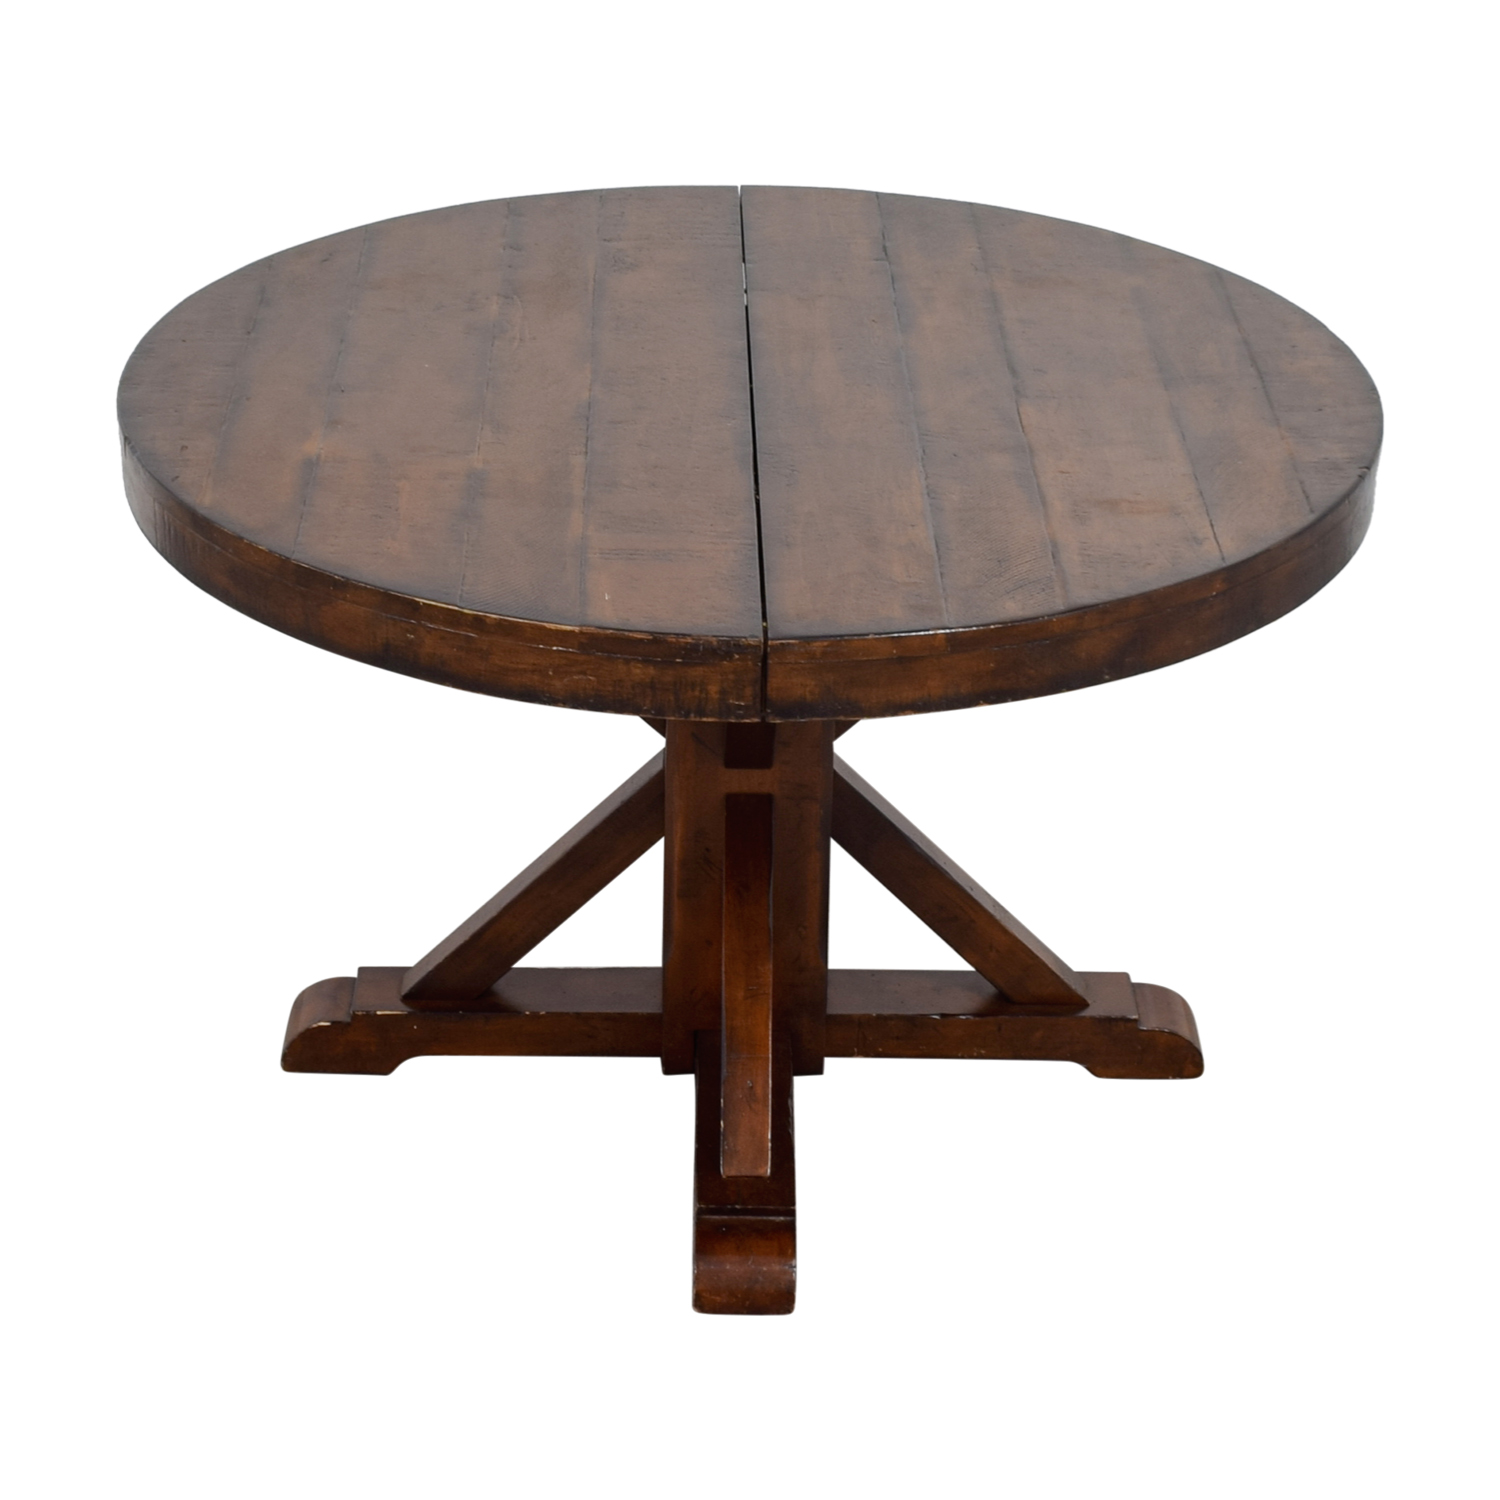 OFF Pottery Barn Pottery Barn Benchwright Extending Round - Pottery barn round pedestal table